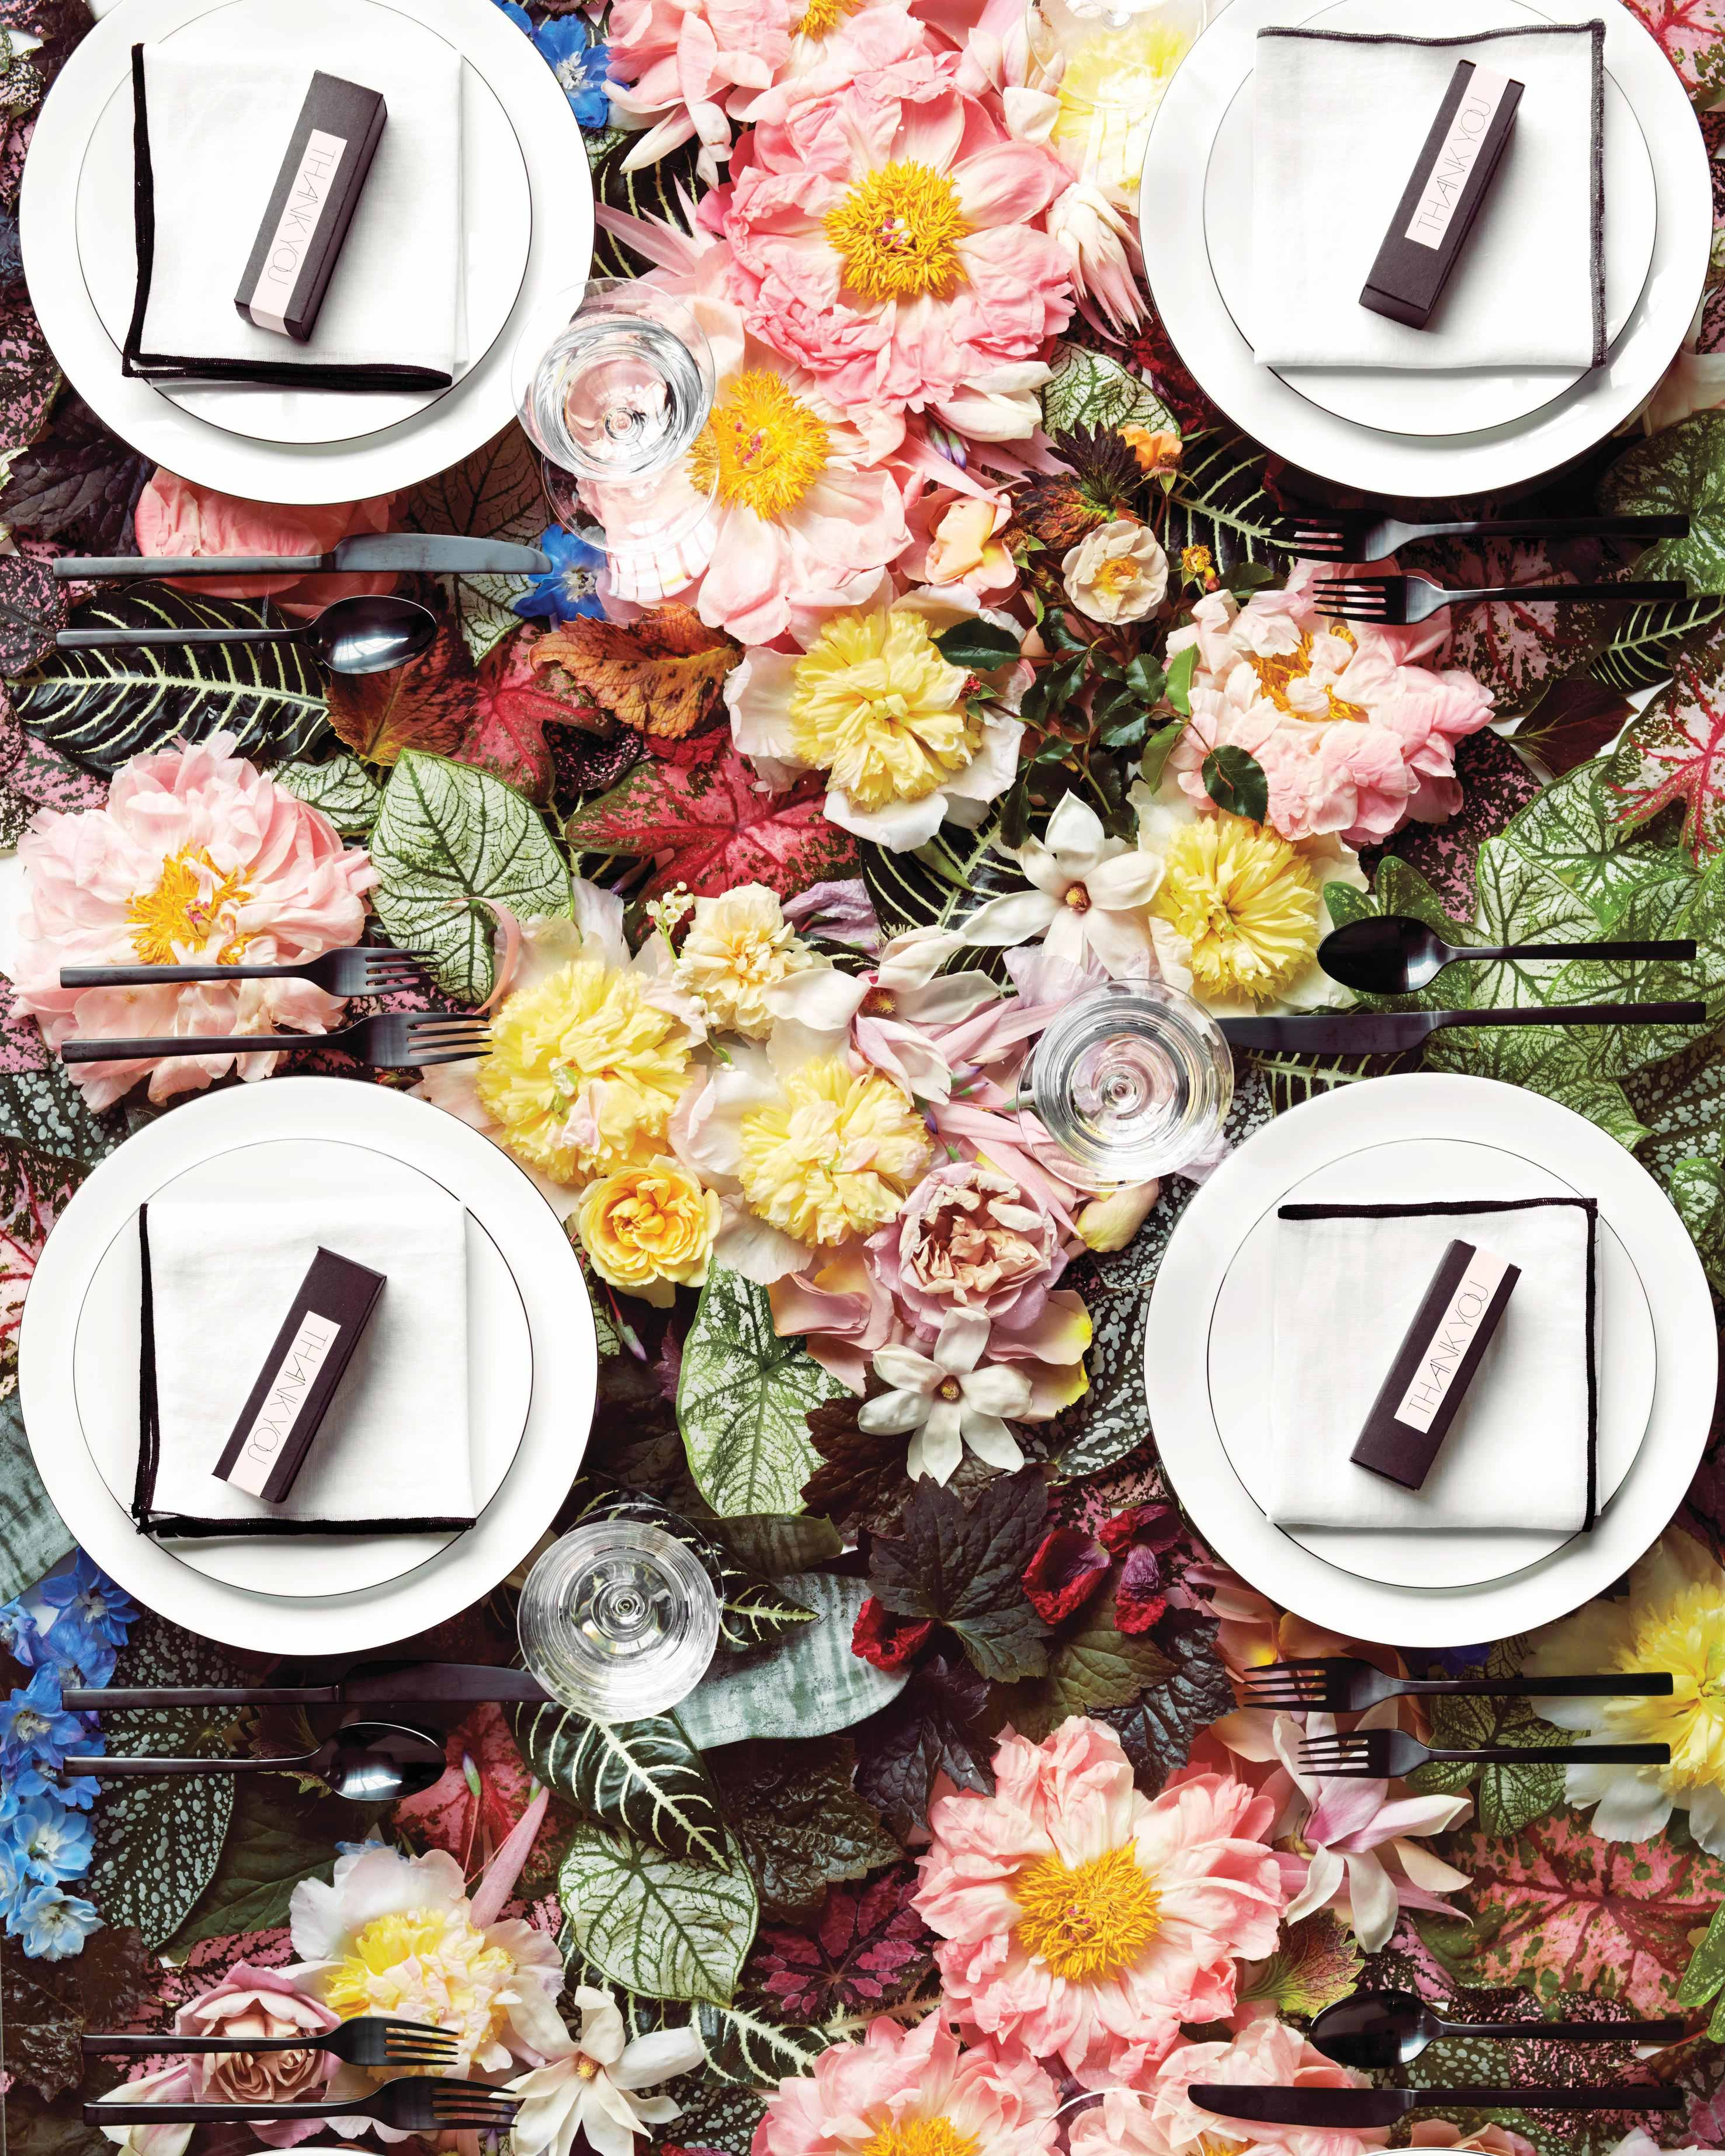 mlucite-table-setting-with-flowers-346-d112266.jpg